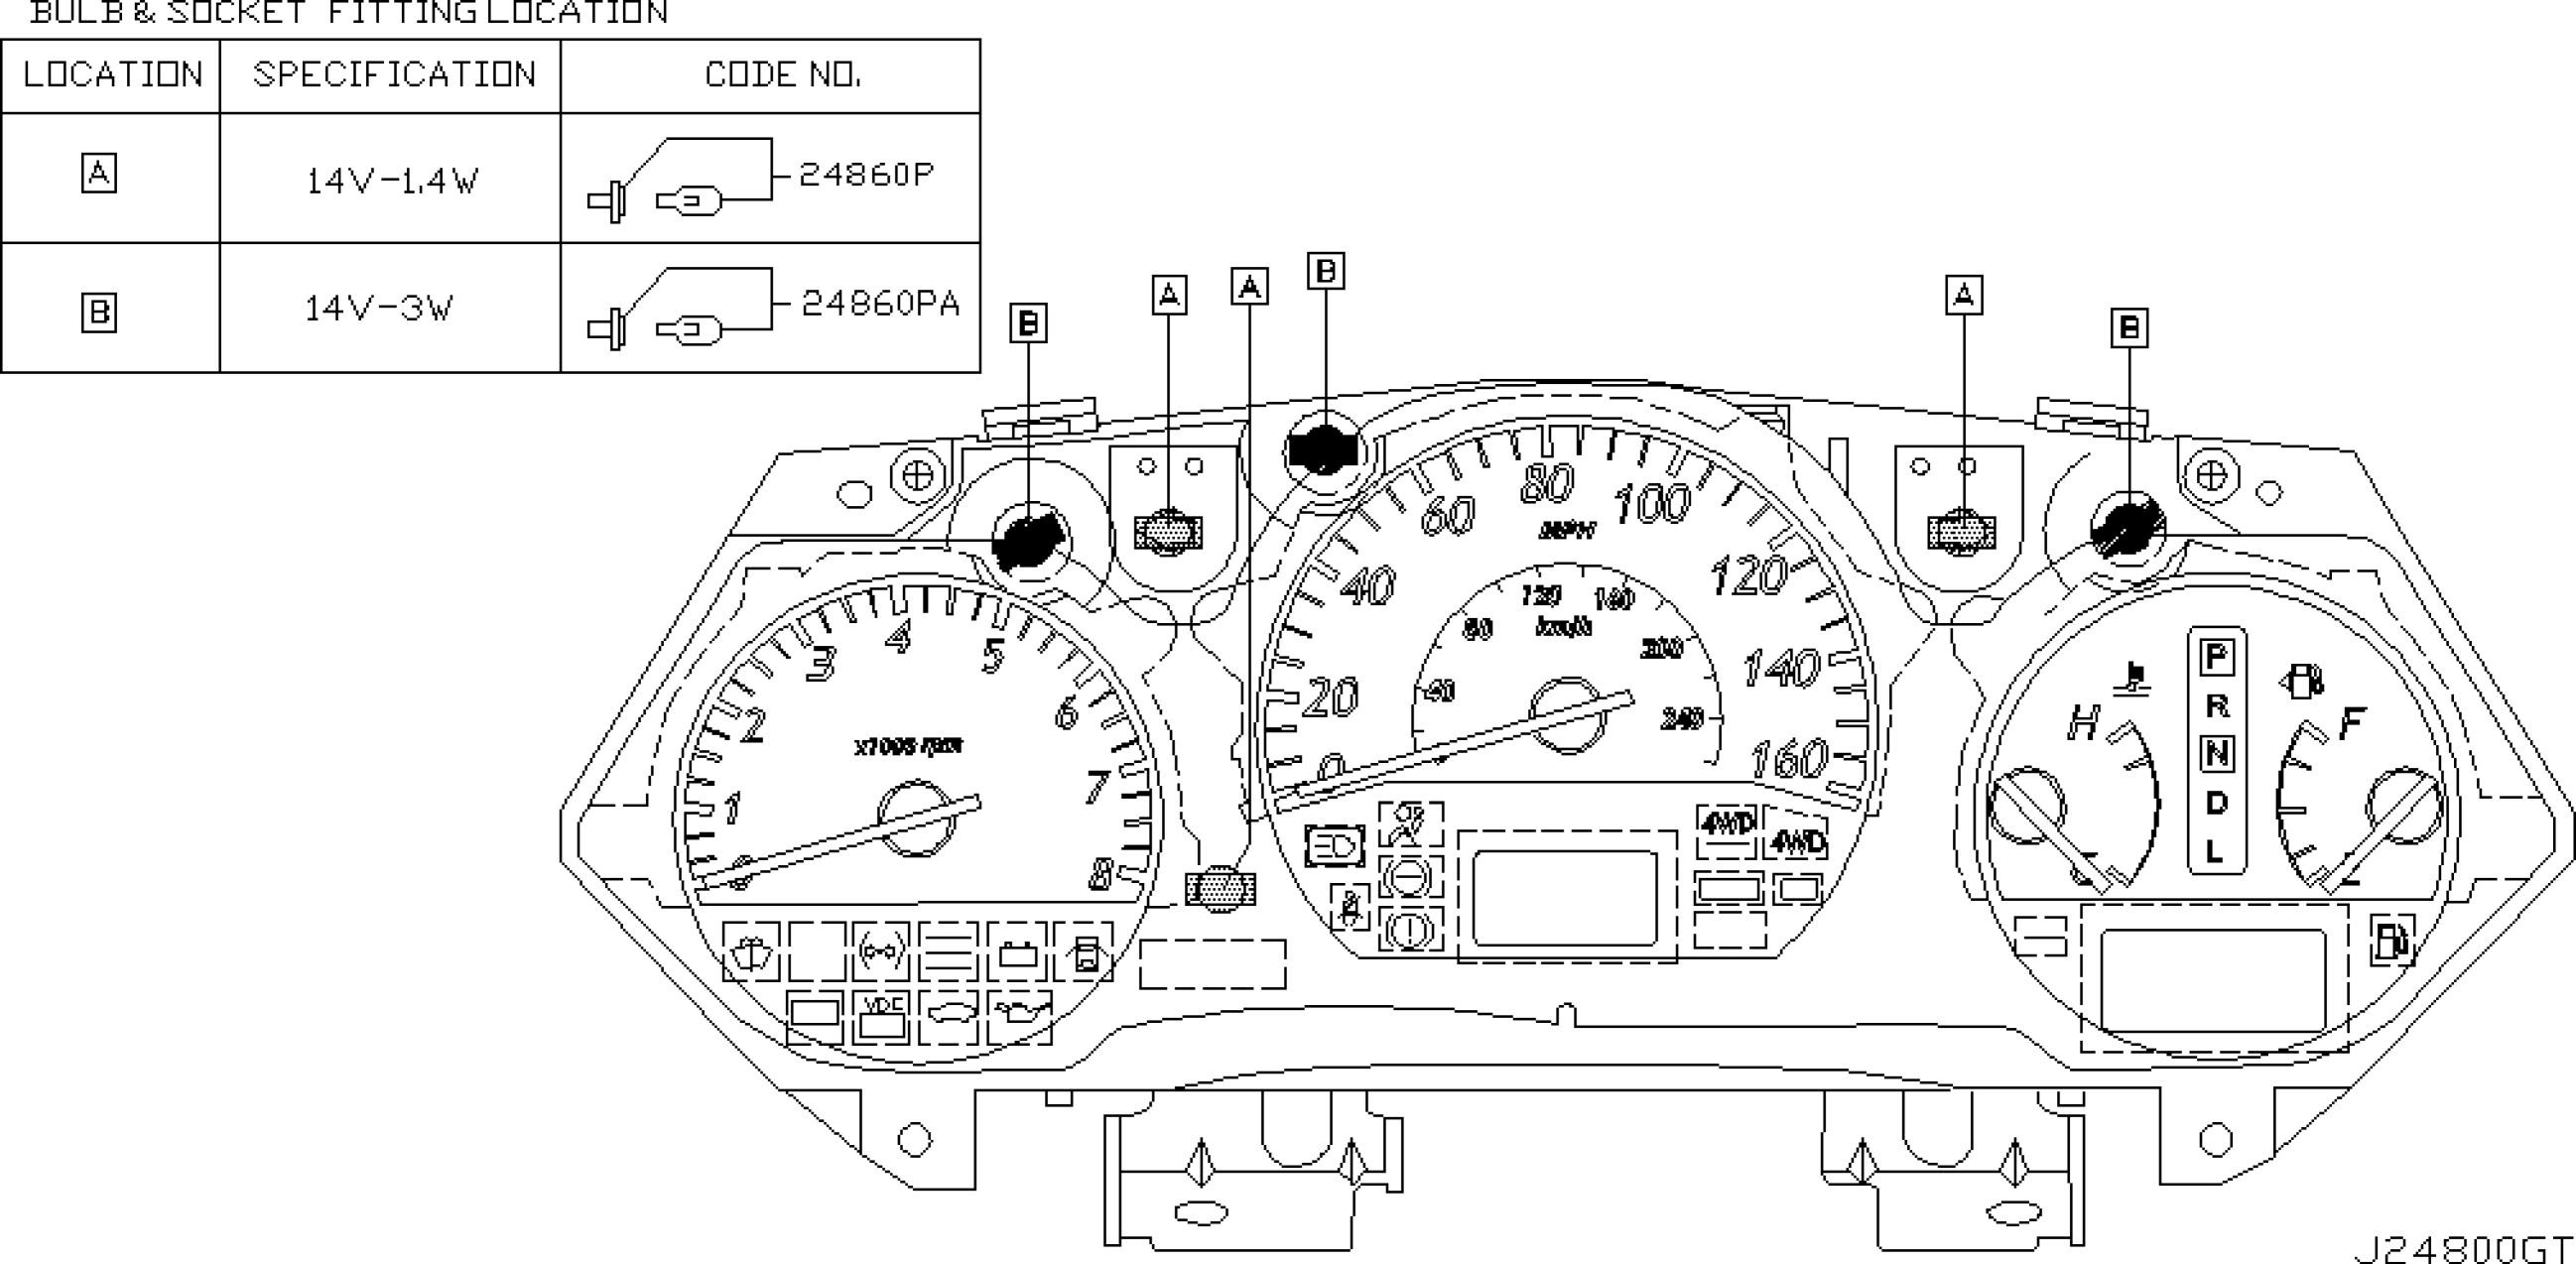 99 Nissan Altima Engine Diagram 2007 Nissan Altima Bination Lamp Xenontype Parts Diagram Car Of 99 Nissan Altima Engine Diagram